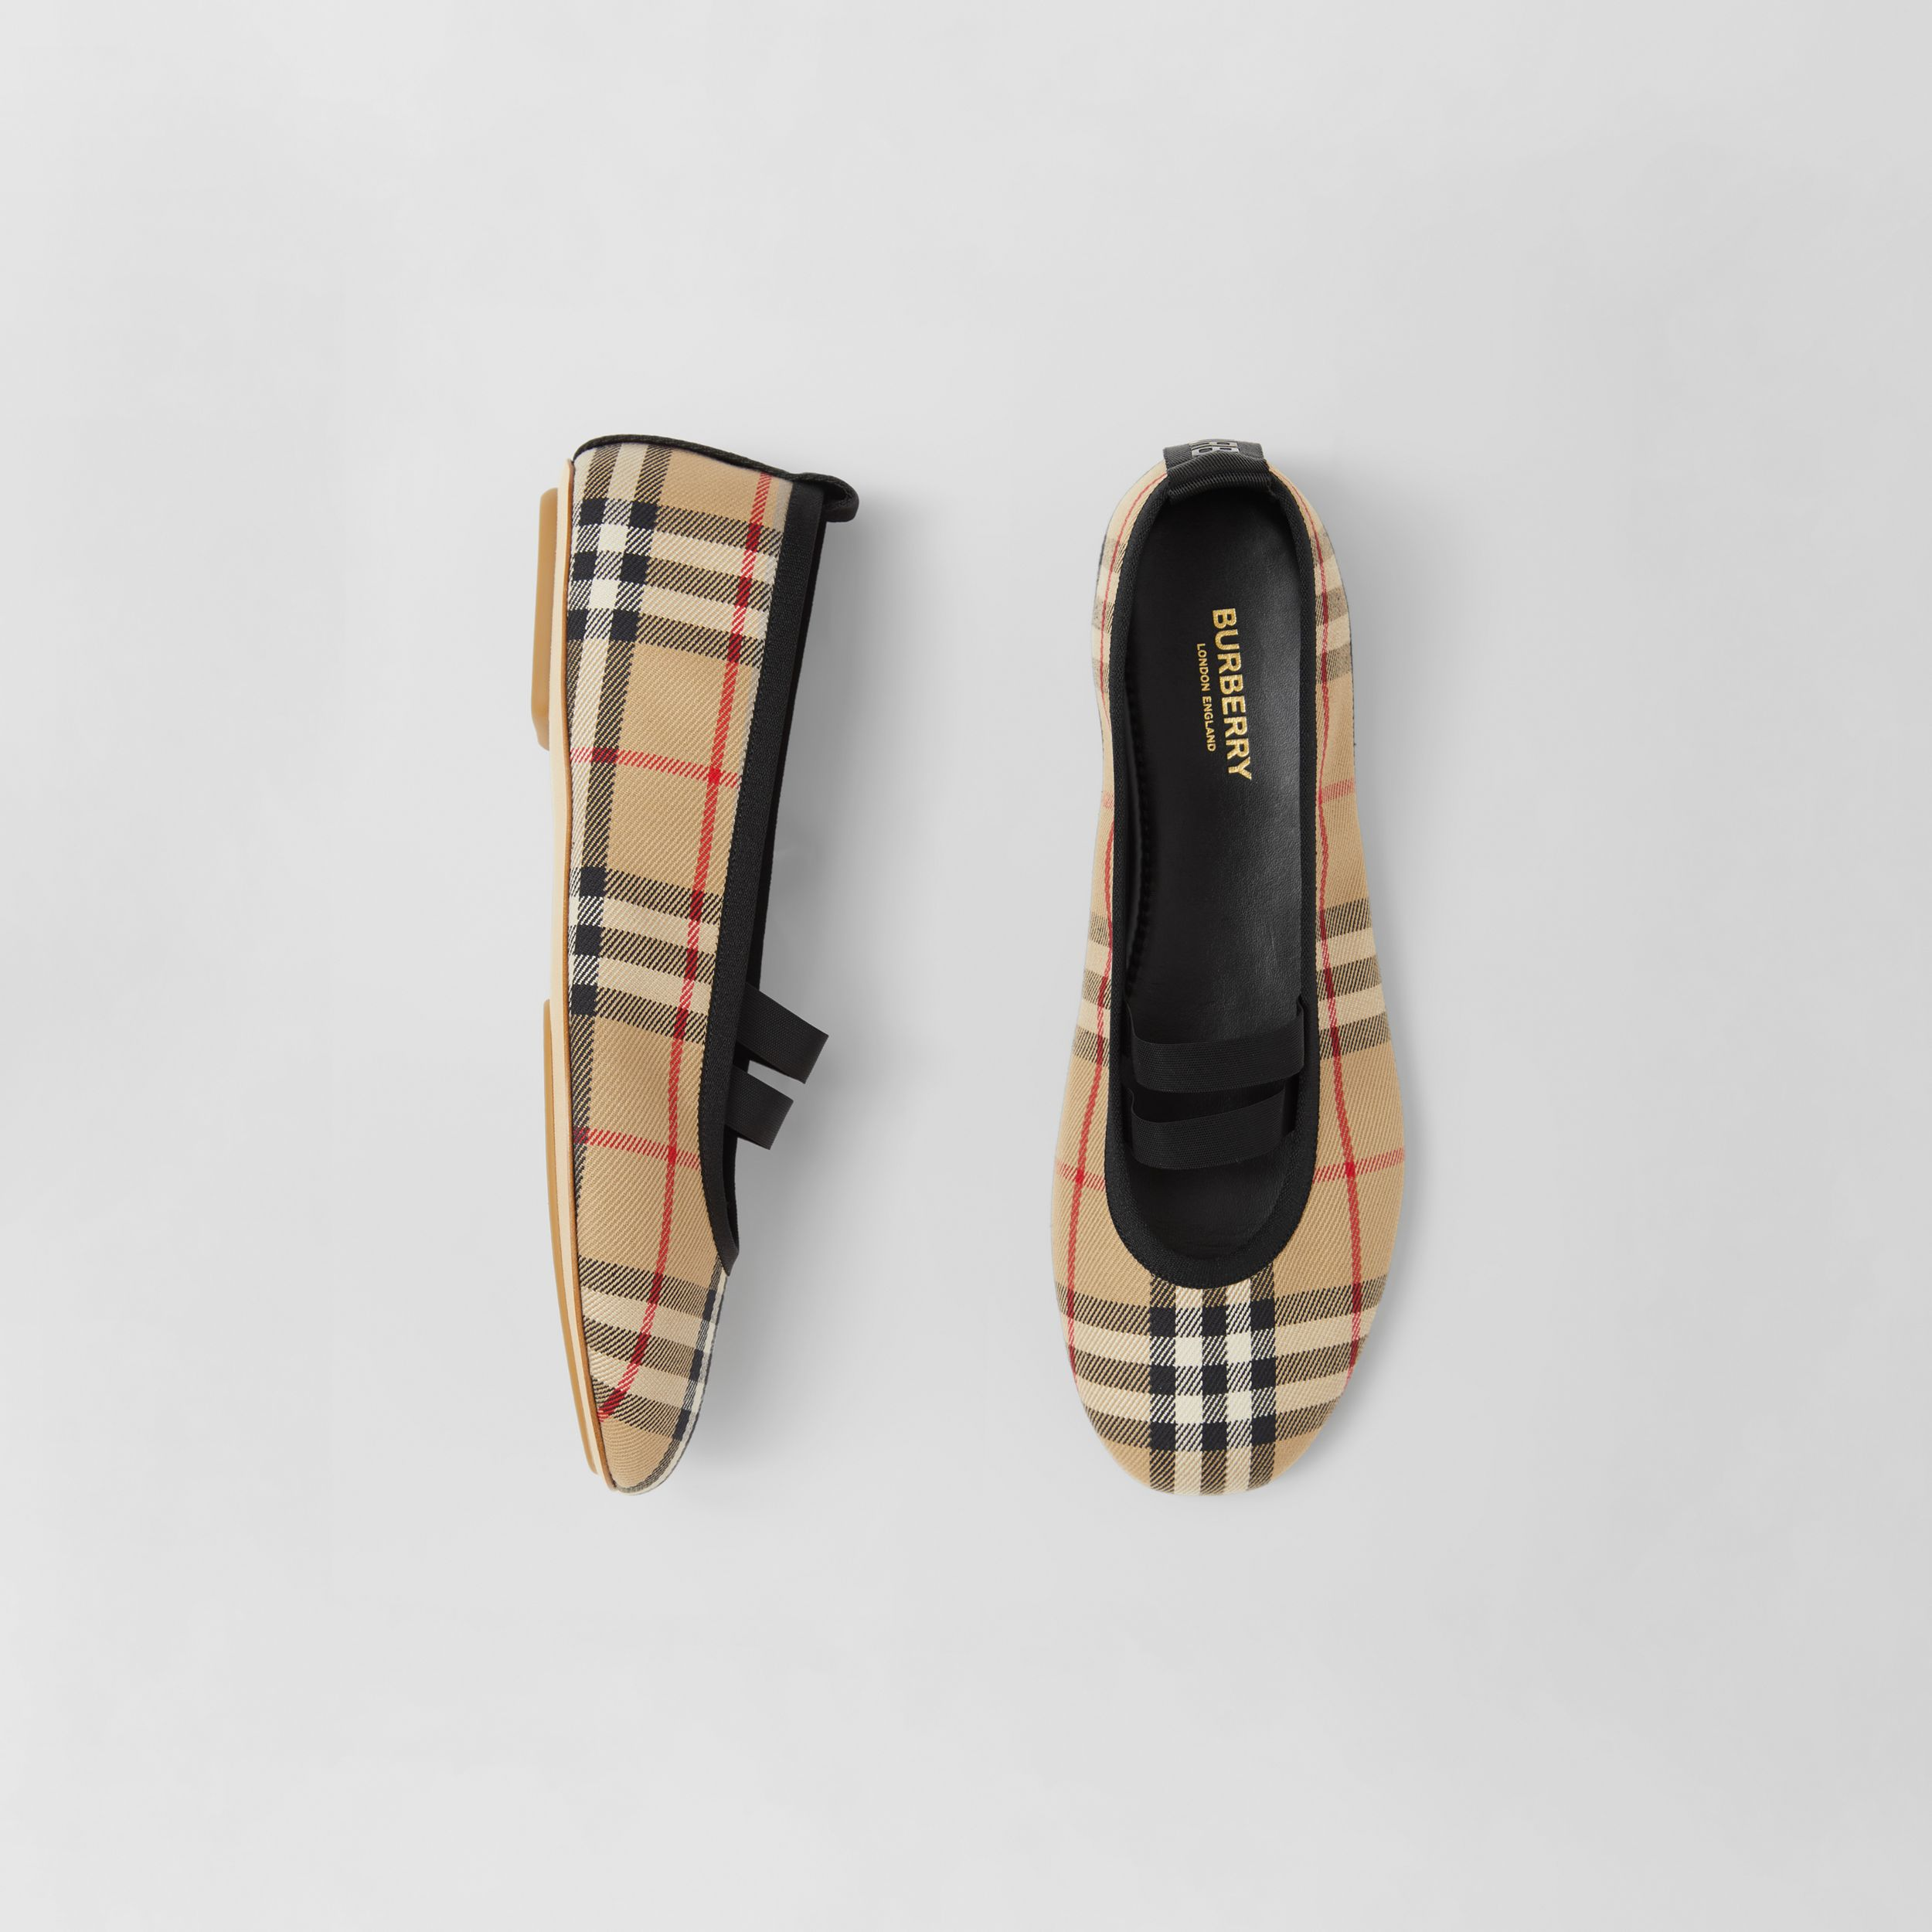 Logo Detail Vintage Check Cotton Ballerinas in Archive Beige - Women | Burberry - 1